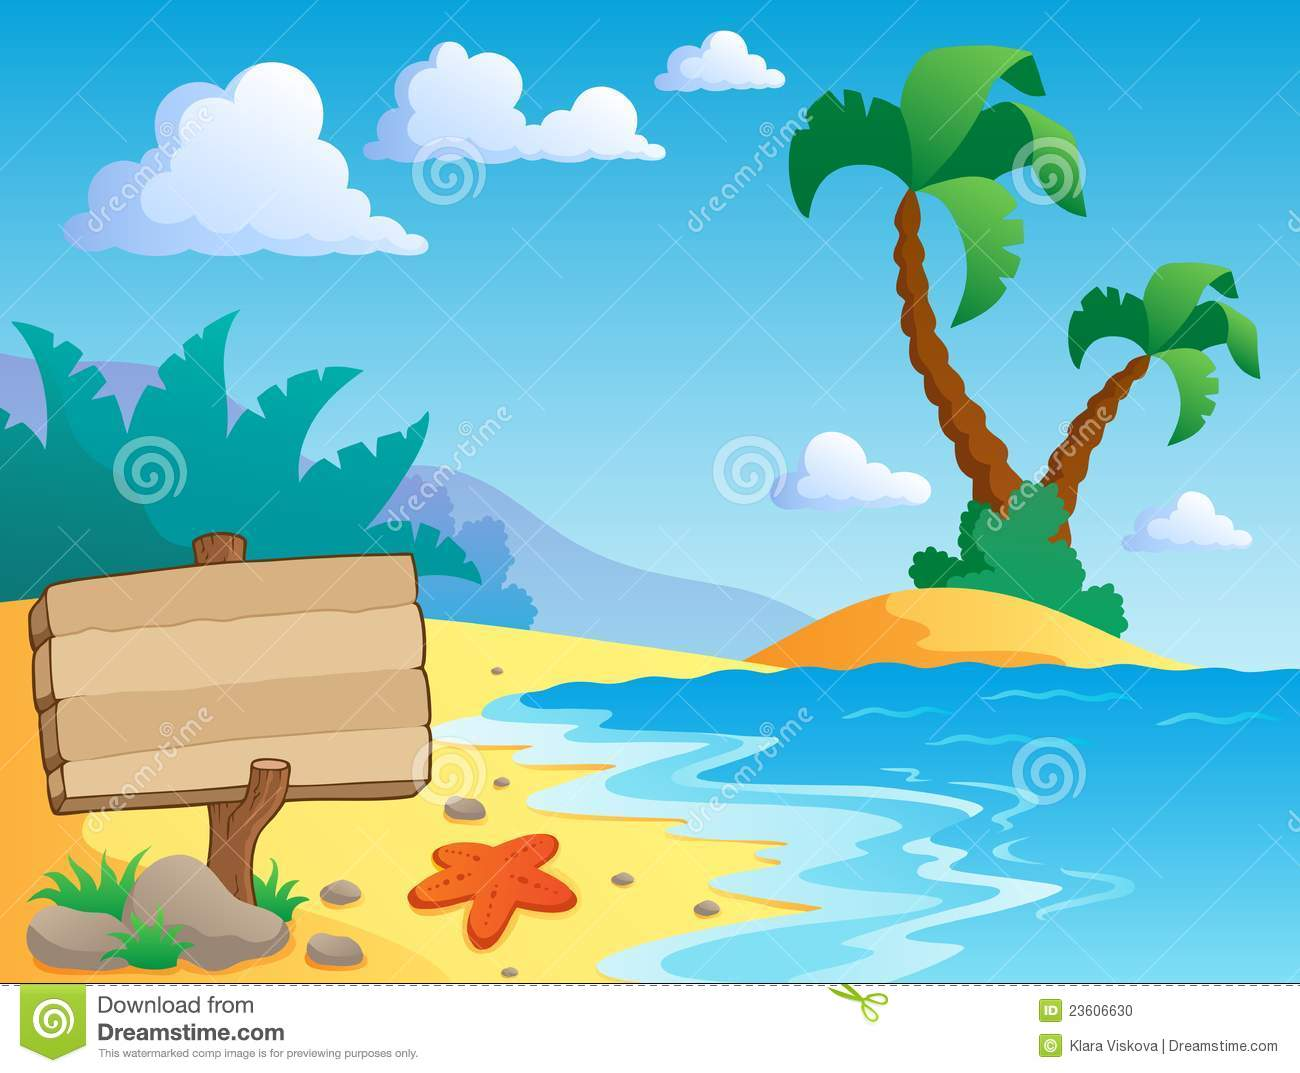 Beach Theme Scenery 2 Stock Photo - Image: 23606630